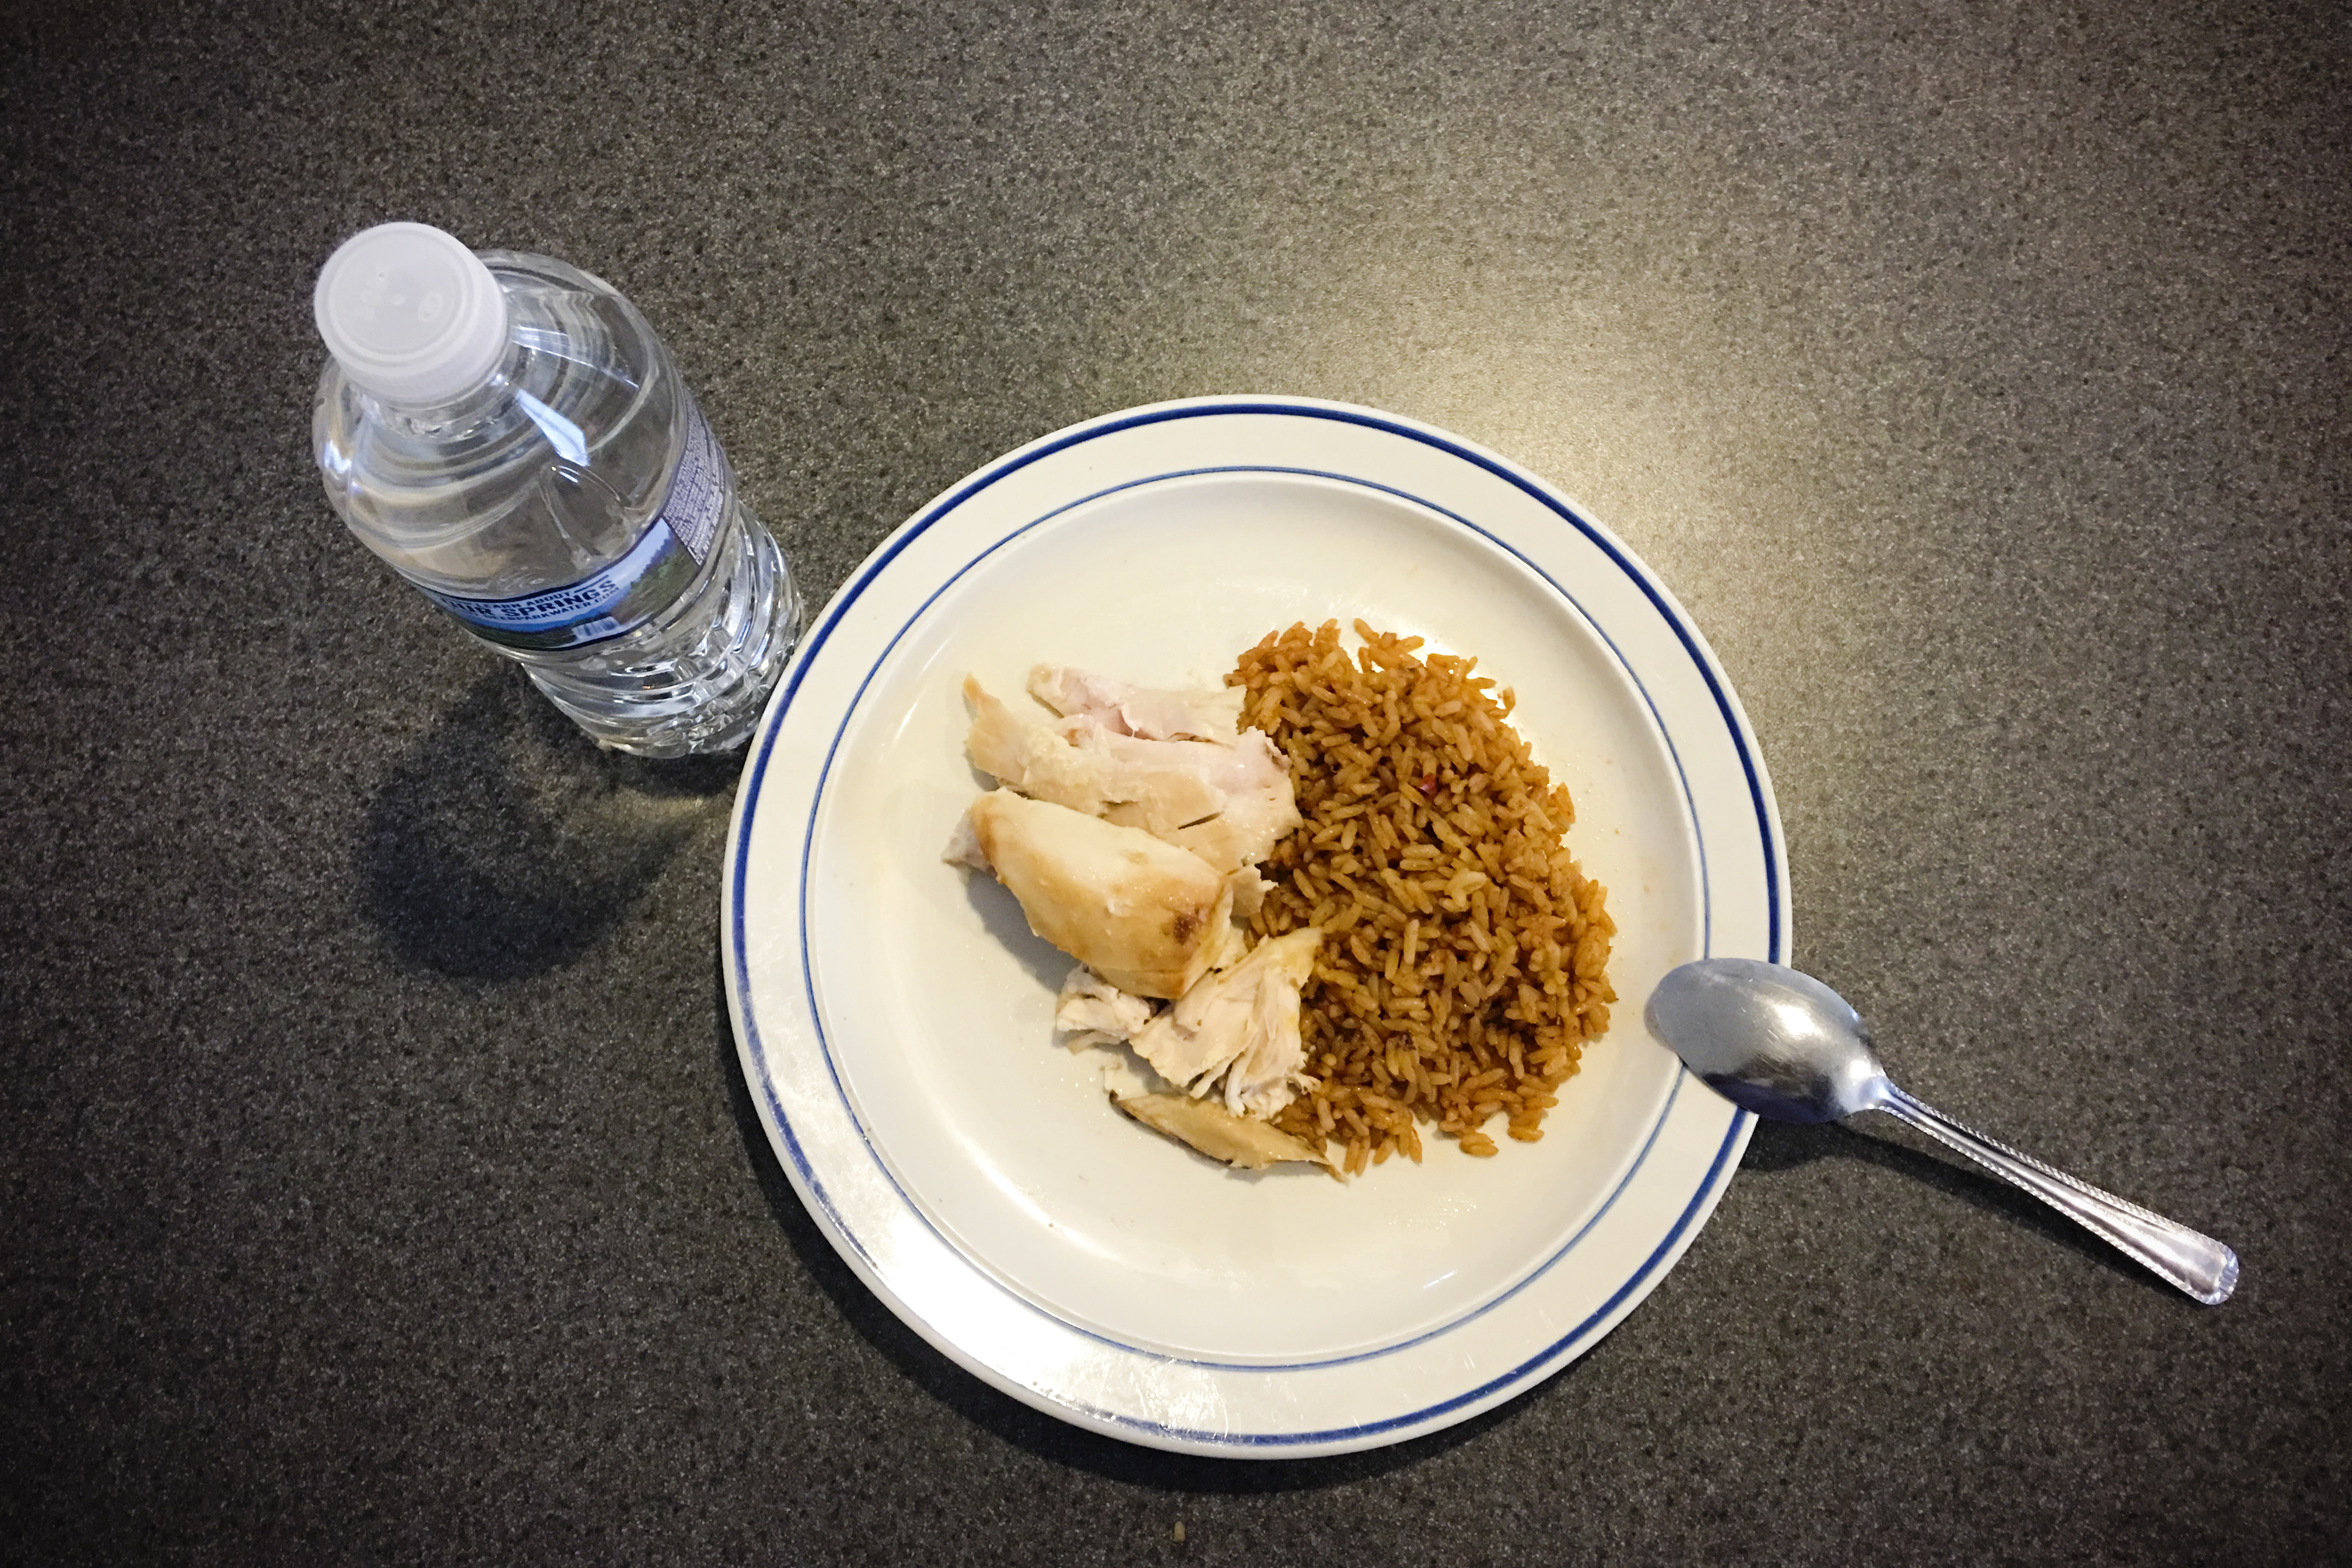 Does bariatric surgery help teens lose weight jewel tells her i decided to have some chicken and rice for lunch to the right is nigerian jollof rice and to the left is rotisserie chicken pre op i would have eaten forumfinder Image collections